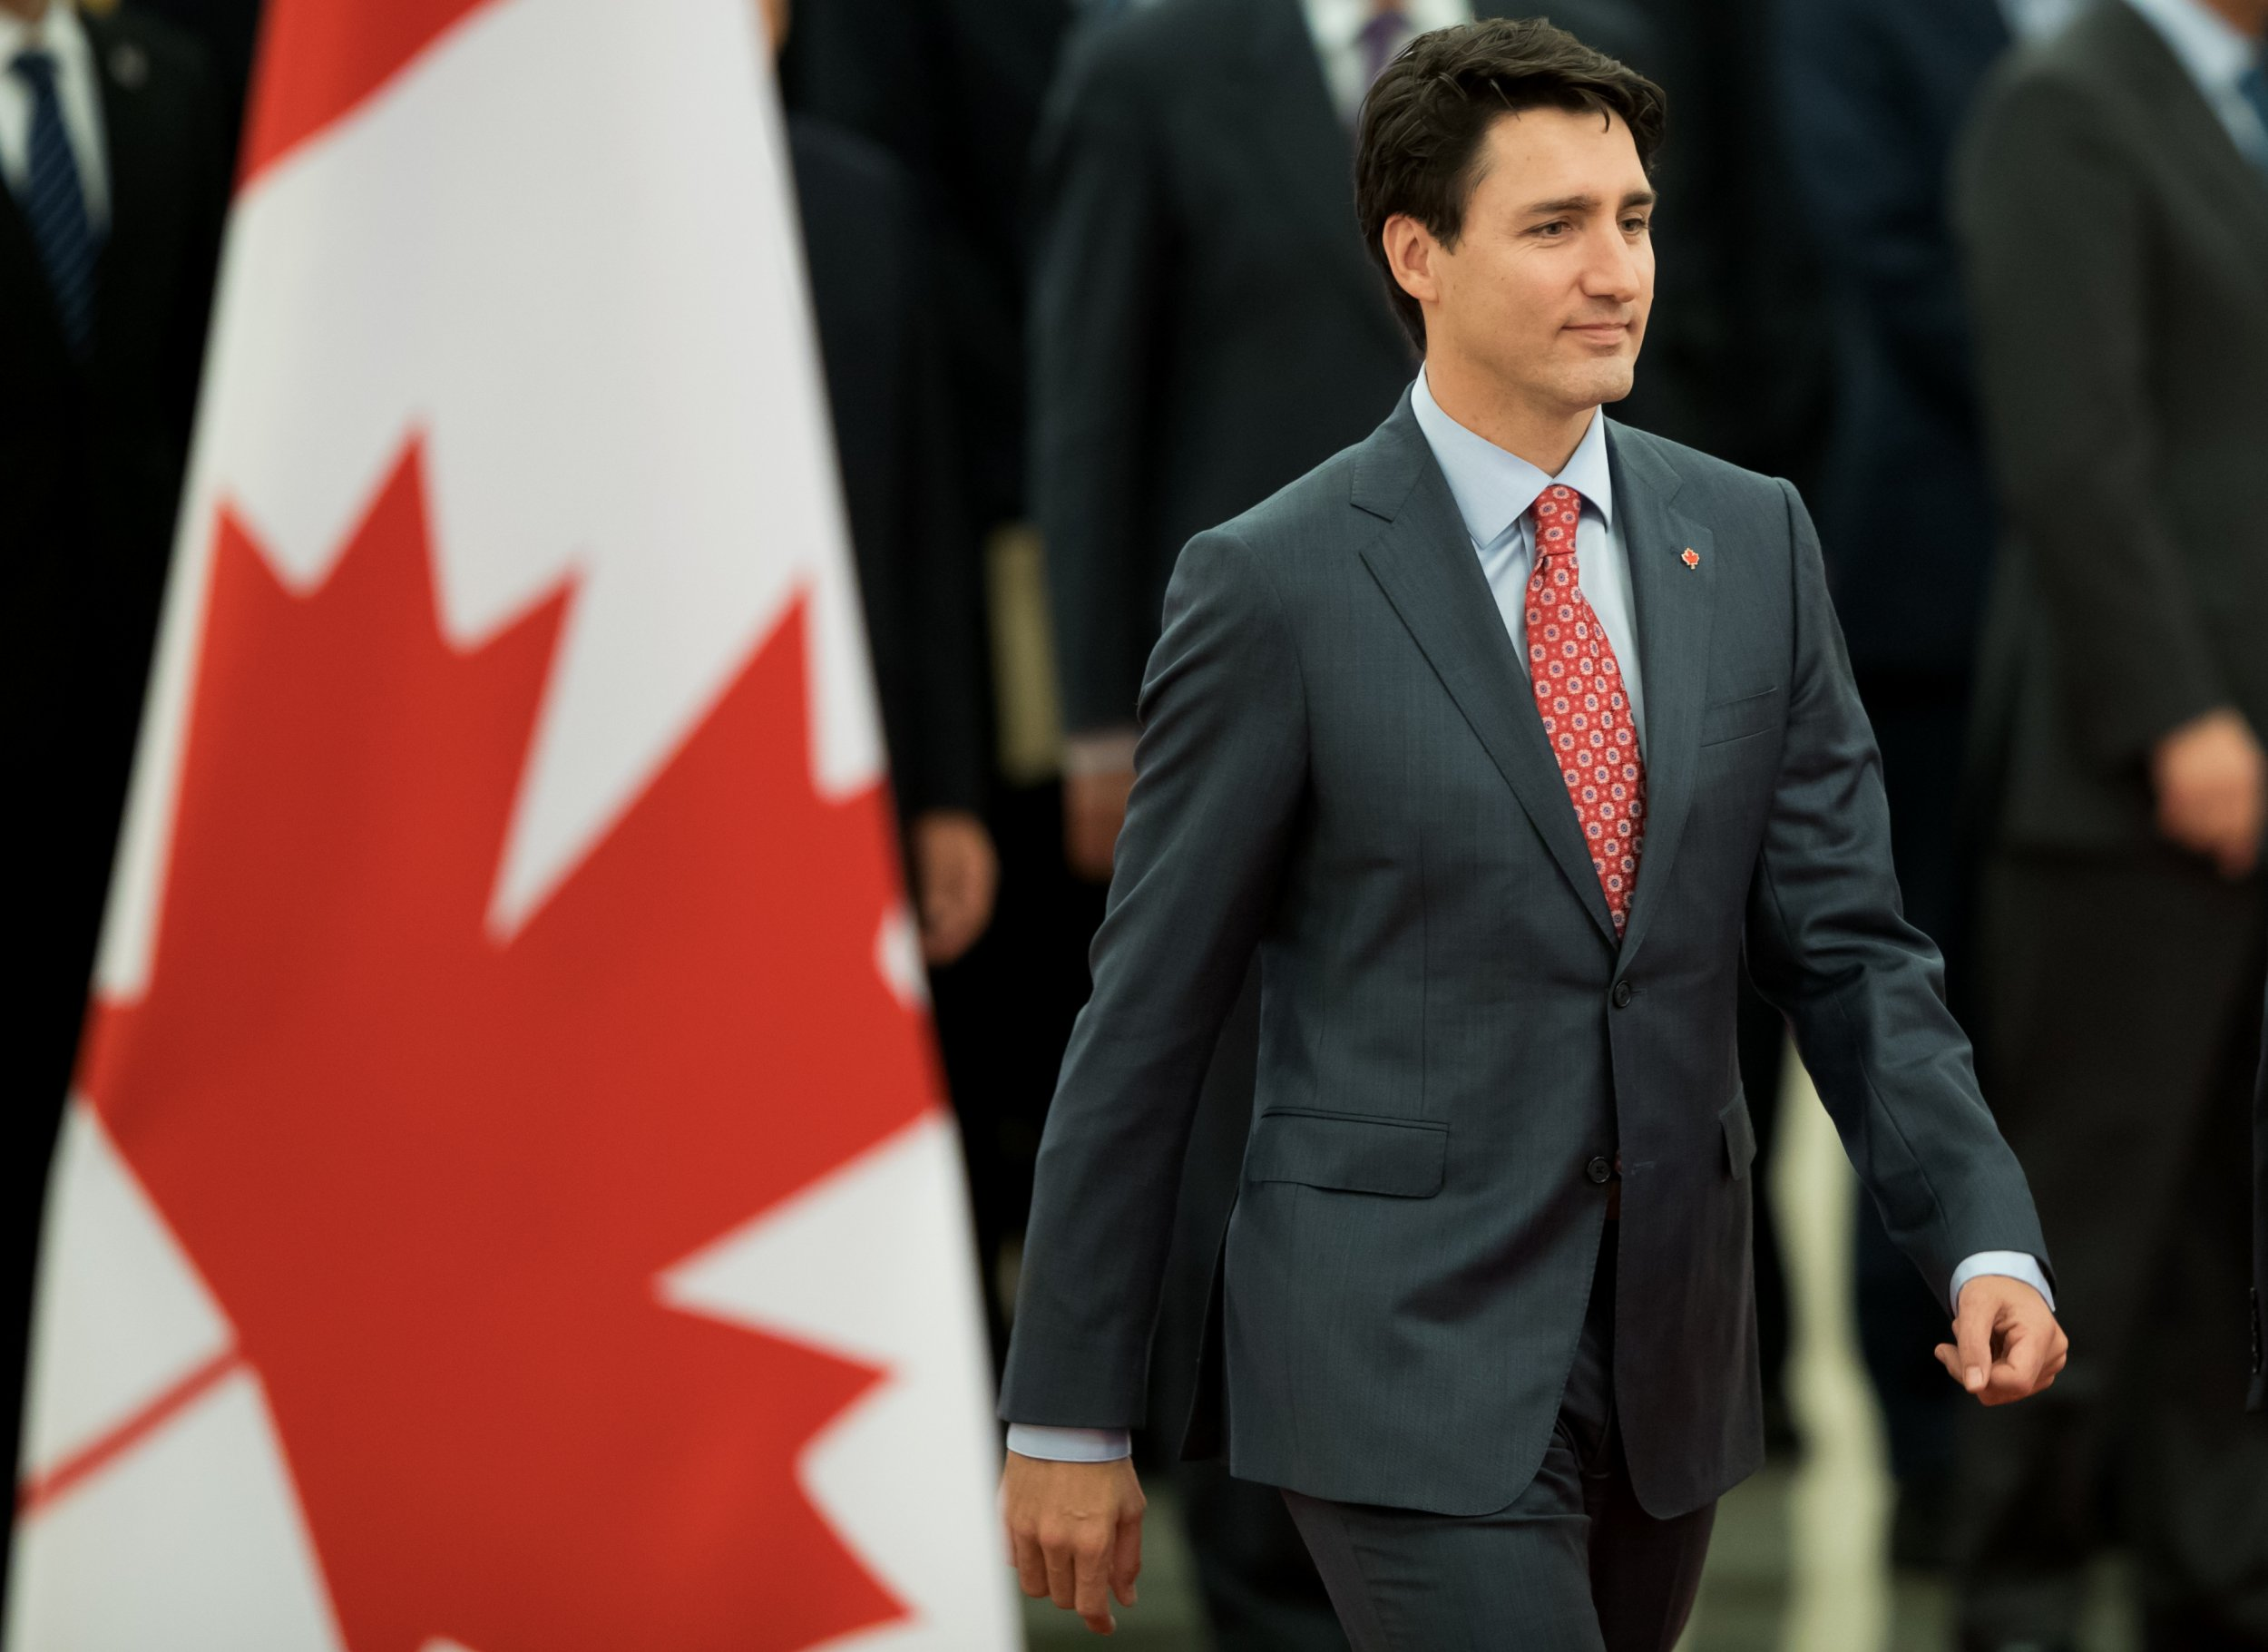 Jeff Bezos, Justin Trudeau expected to discuss Amazons HQ2